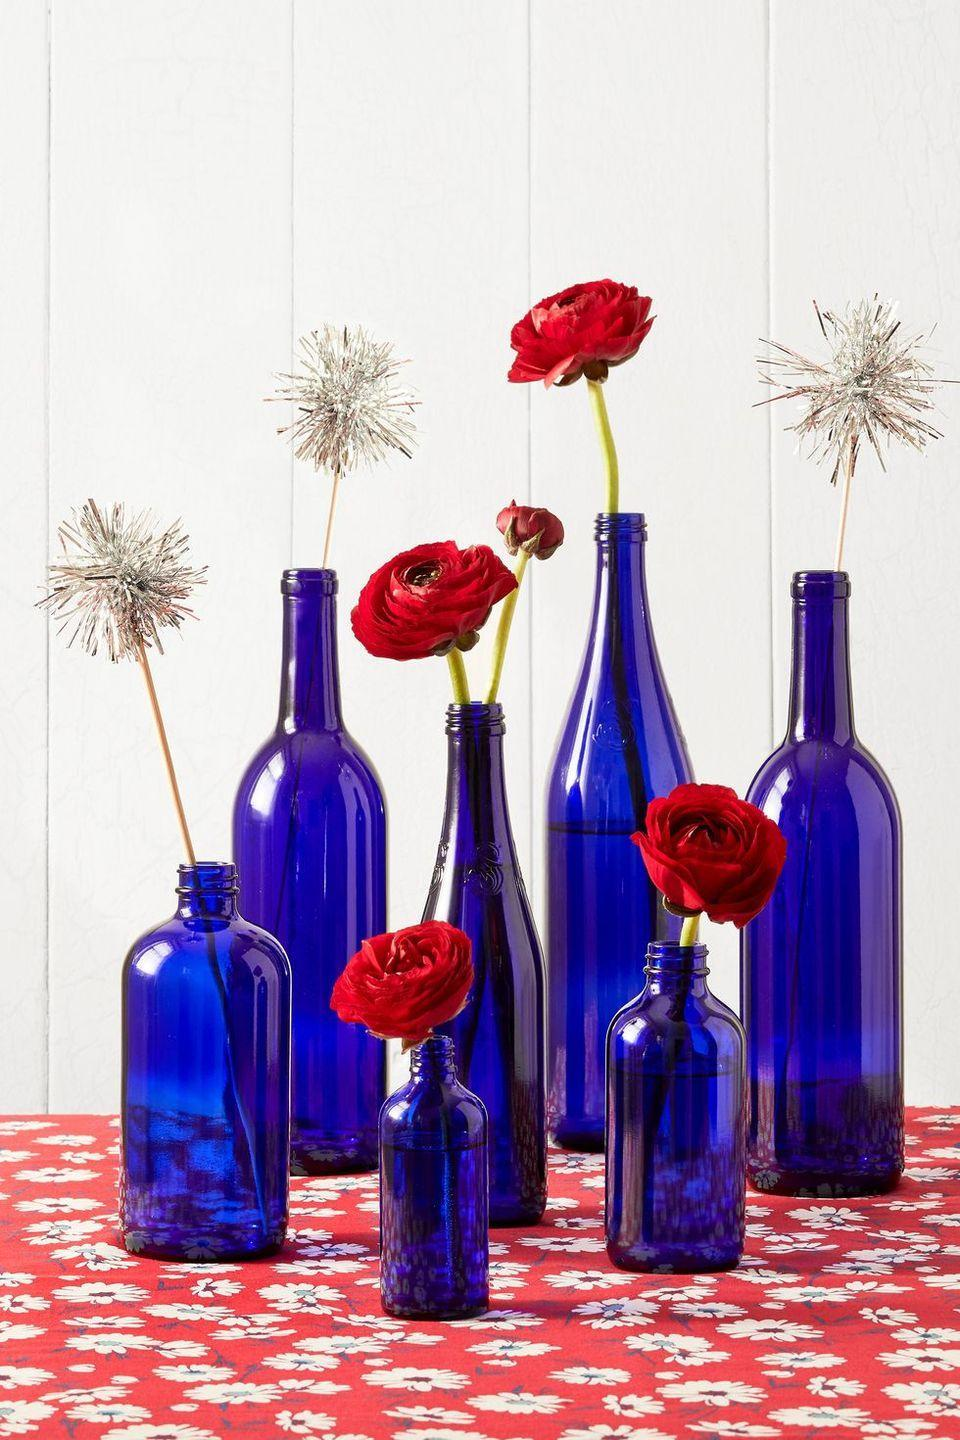 """<p>This easy decoration involves blue glass bottles, red flowers, and other 4th of July decorations, though it's easy enough to customize for just about any summer occasion. </p><p><a class=""""link rapid-noclick-resp"""" href=""""https://go.redirectingat.com?id=74968X1596630&url=https%3A%2F%2Fwww.walmart.com%2Fsearch%2F%3Fquery%3Dblue%2Bglass%2Bbottles&sref=https%3A%2F%2Fwww.thepioneerwoman.com%2Fjust-for-fun%2Fg36599700%2Fsummer-party-ideas%2F"""" rel=""""nofollow noopener"""" target=""""_blank"""" data-ylk=""""slk:SHOP BLUE GLASS BOTTLES"""">SHOP BLUE GLASS BOTTLES</a></p>"""